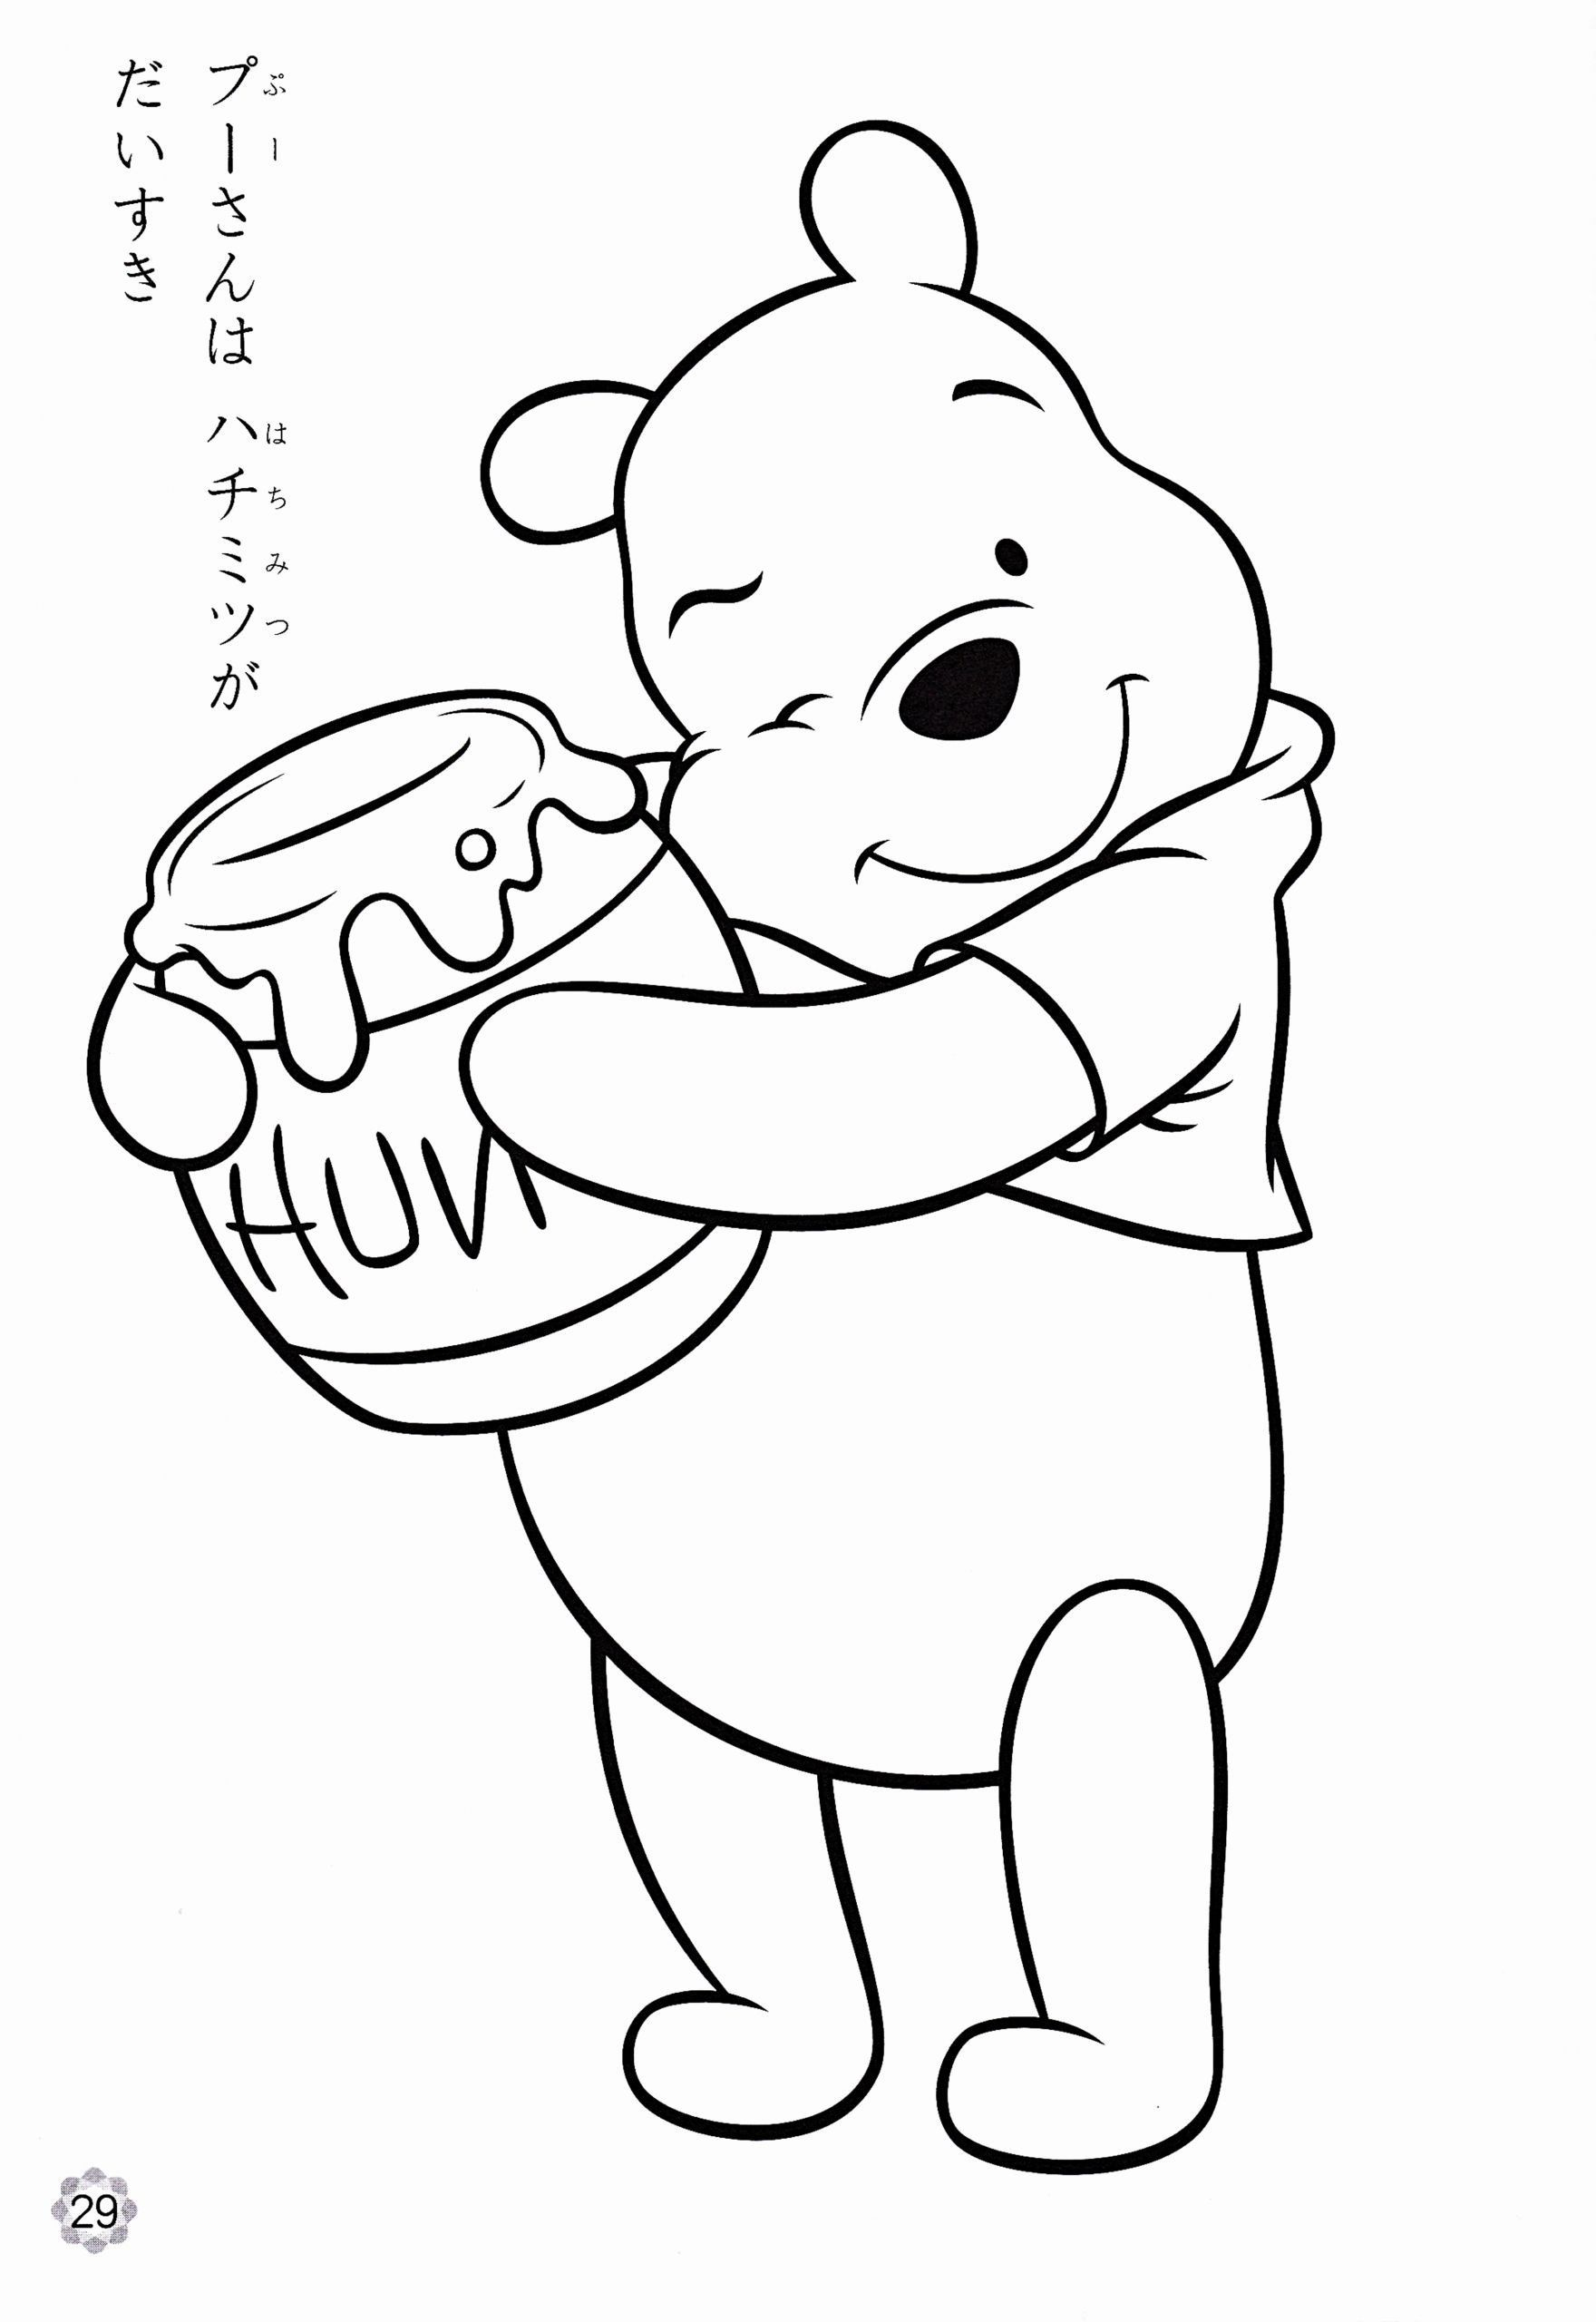 coloring pages : Disney Characters Coloring Pages Disney ... | 2560x1760